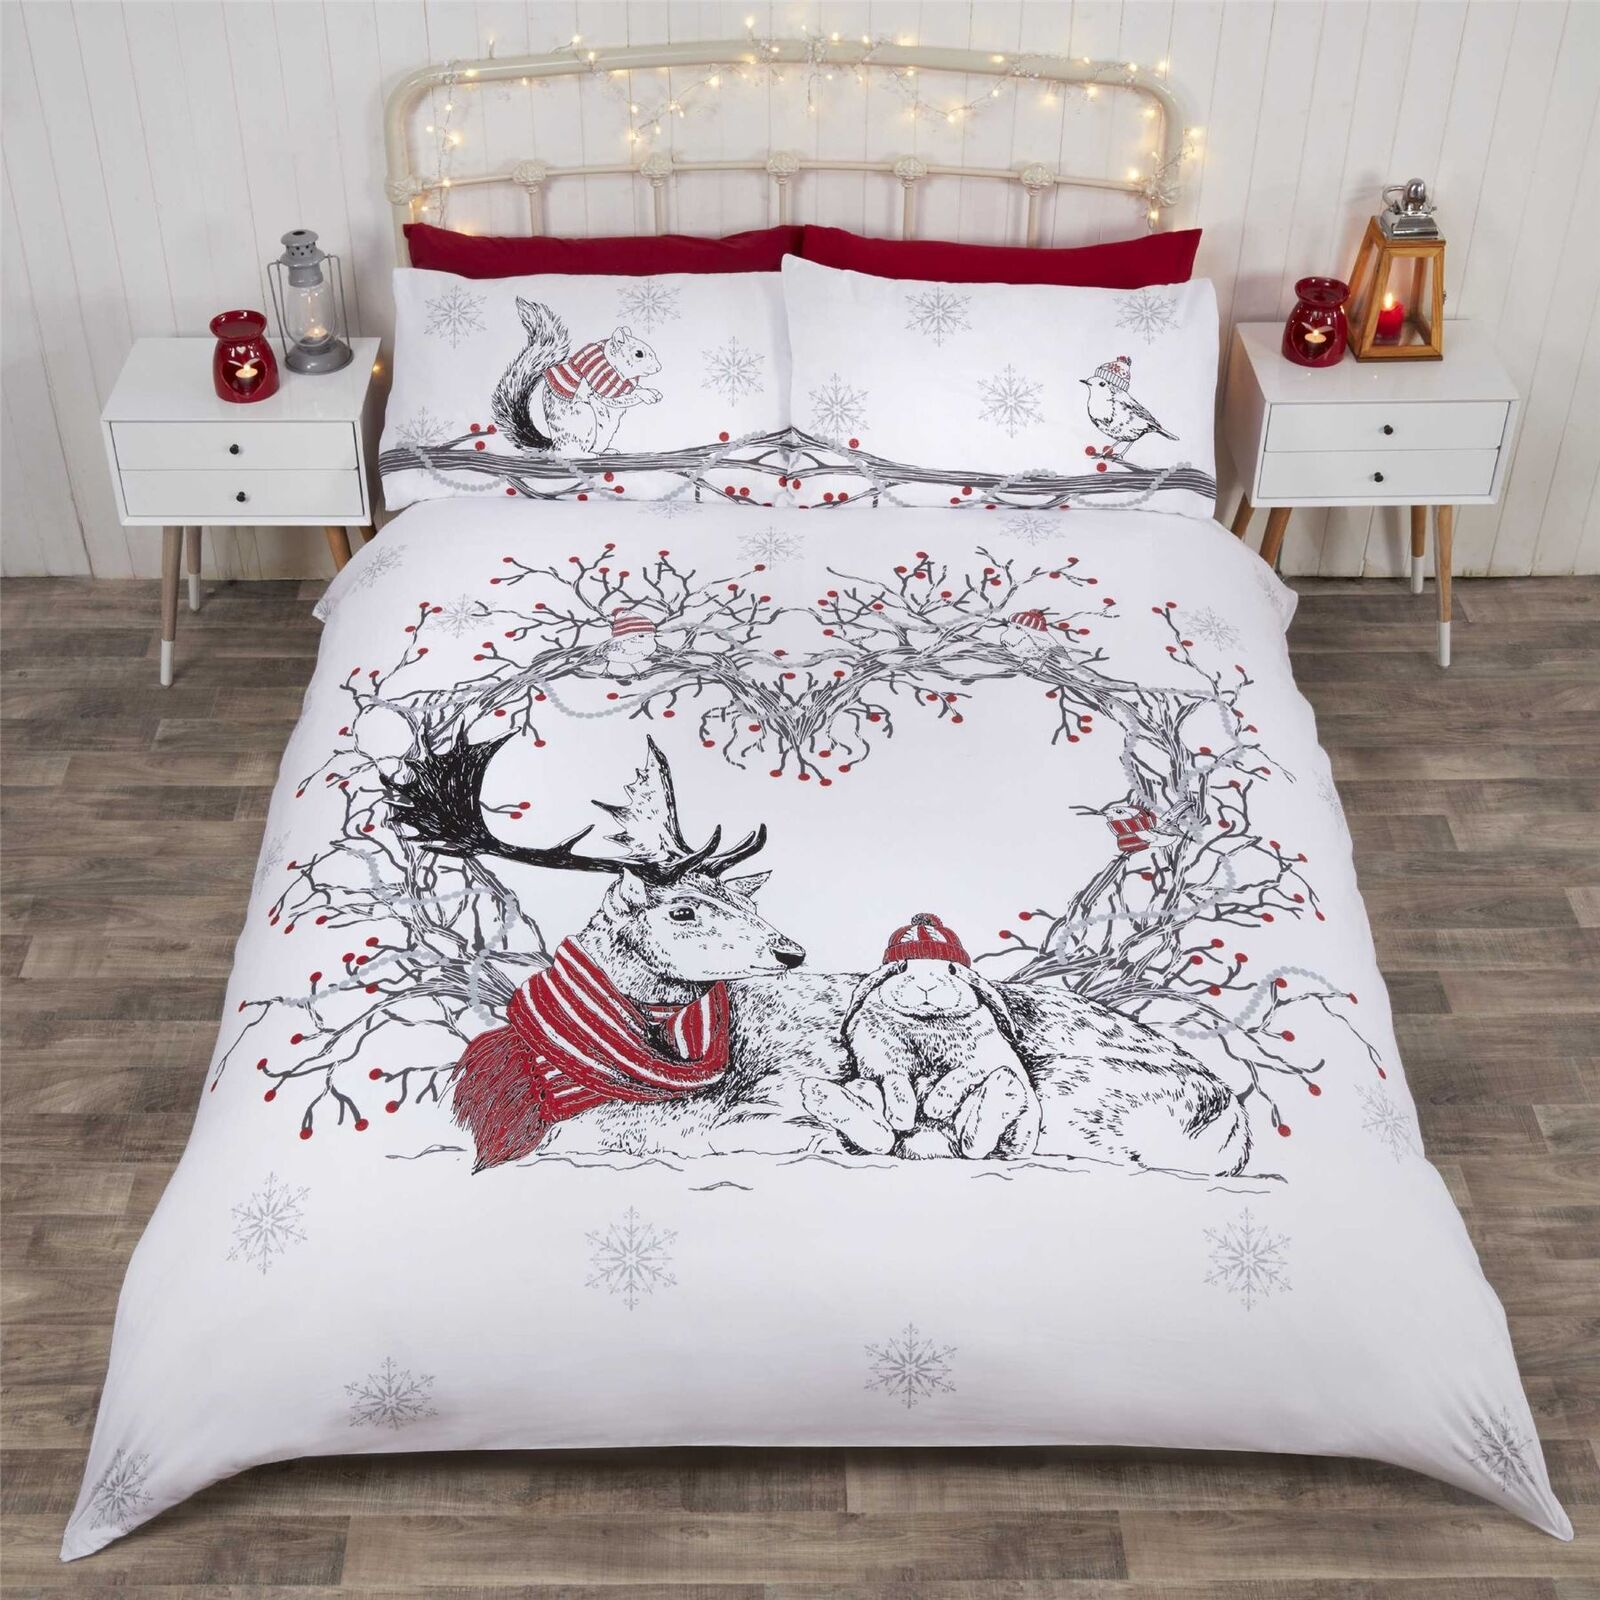 CHRISTMAS WINTER ANIMALS WREATH RED COTTON BLEND DOUBLE 6 PIECE BEDDING SET